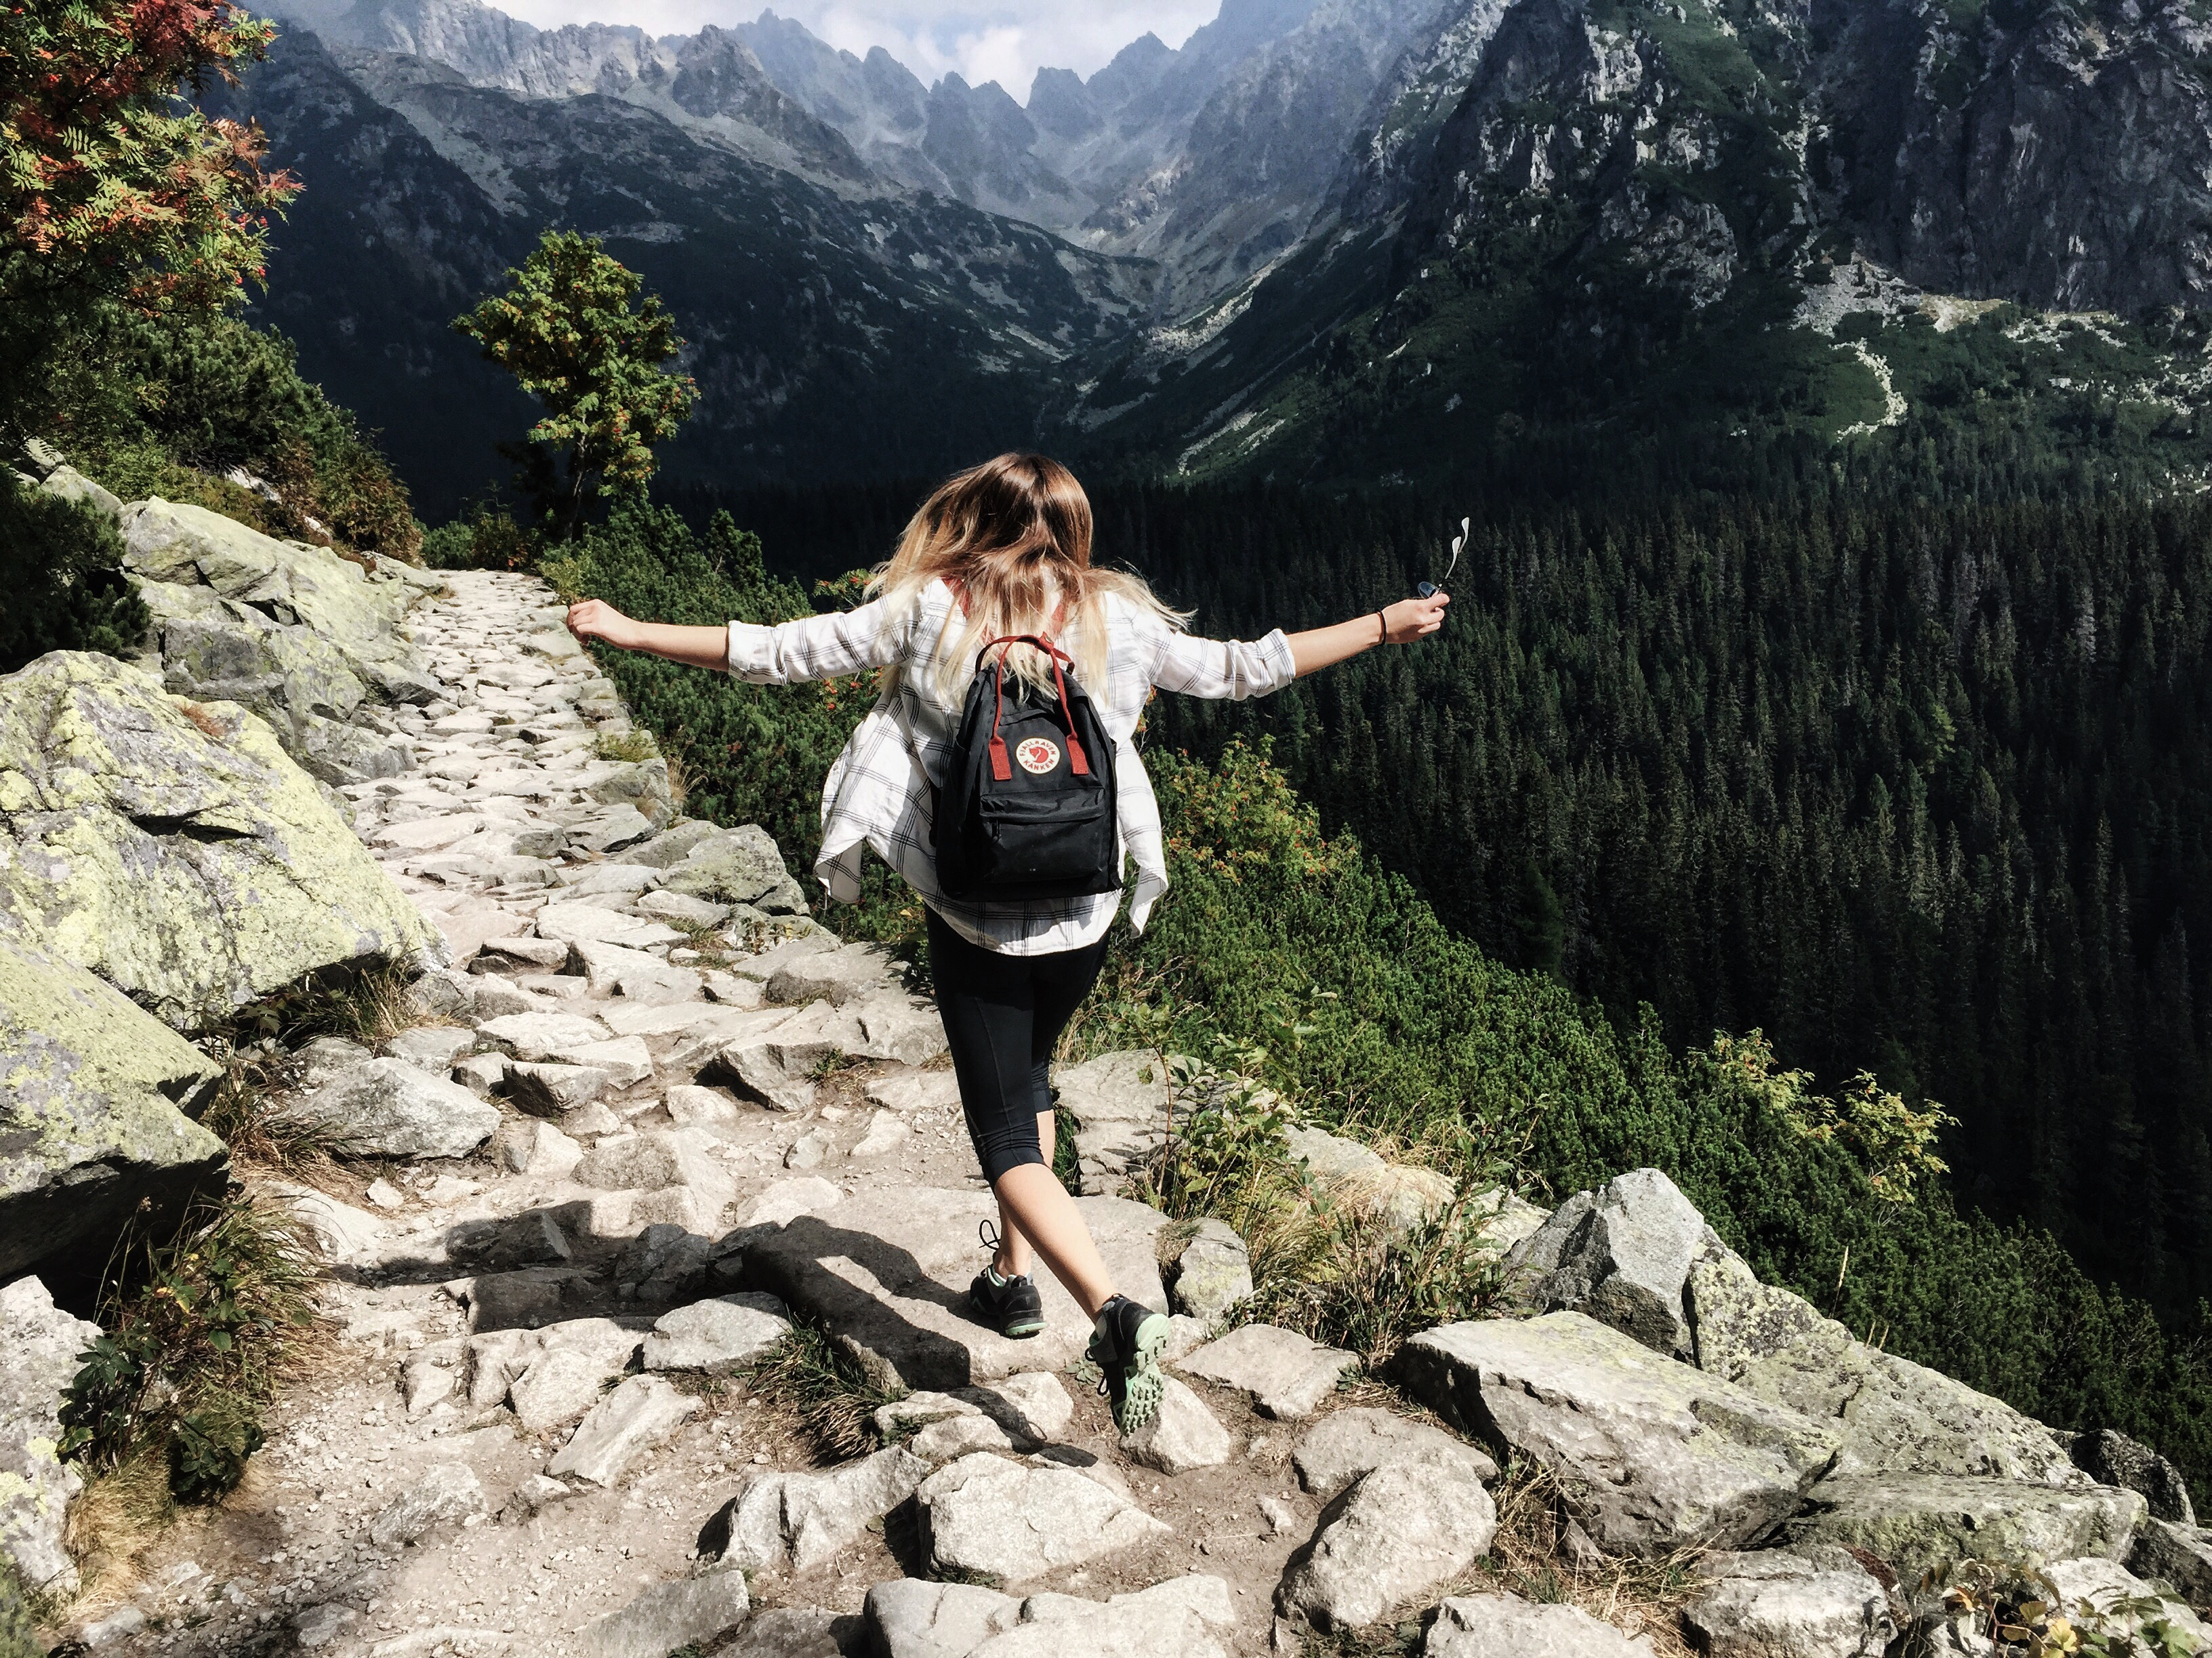 Image: Young Woman hiking in mountains